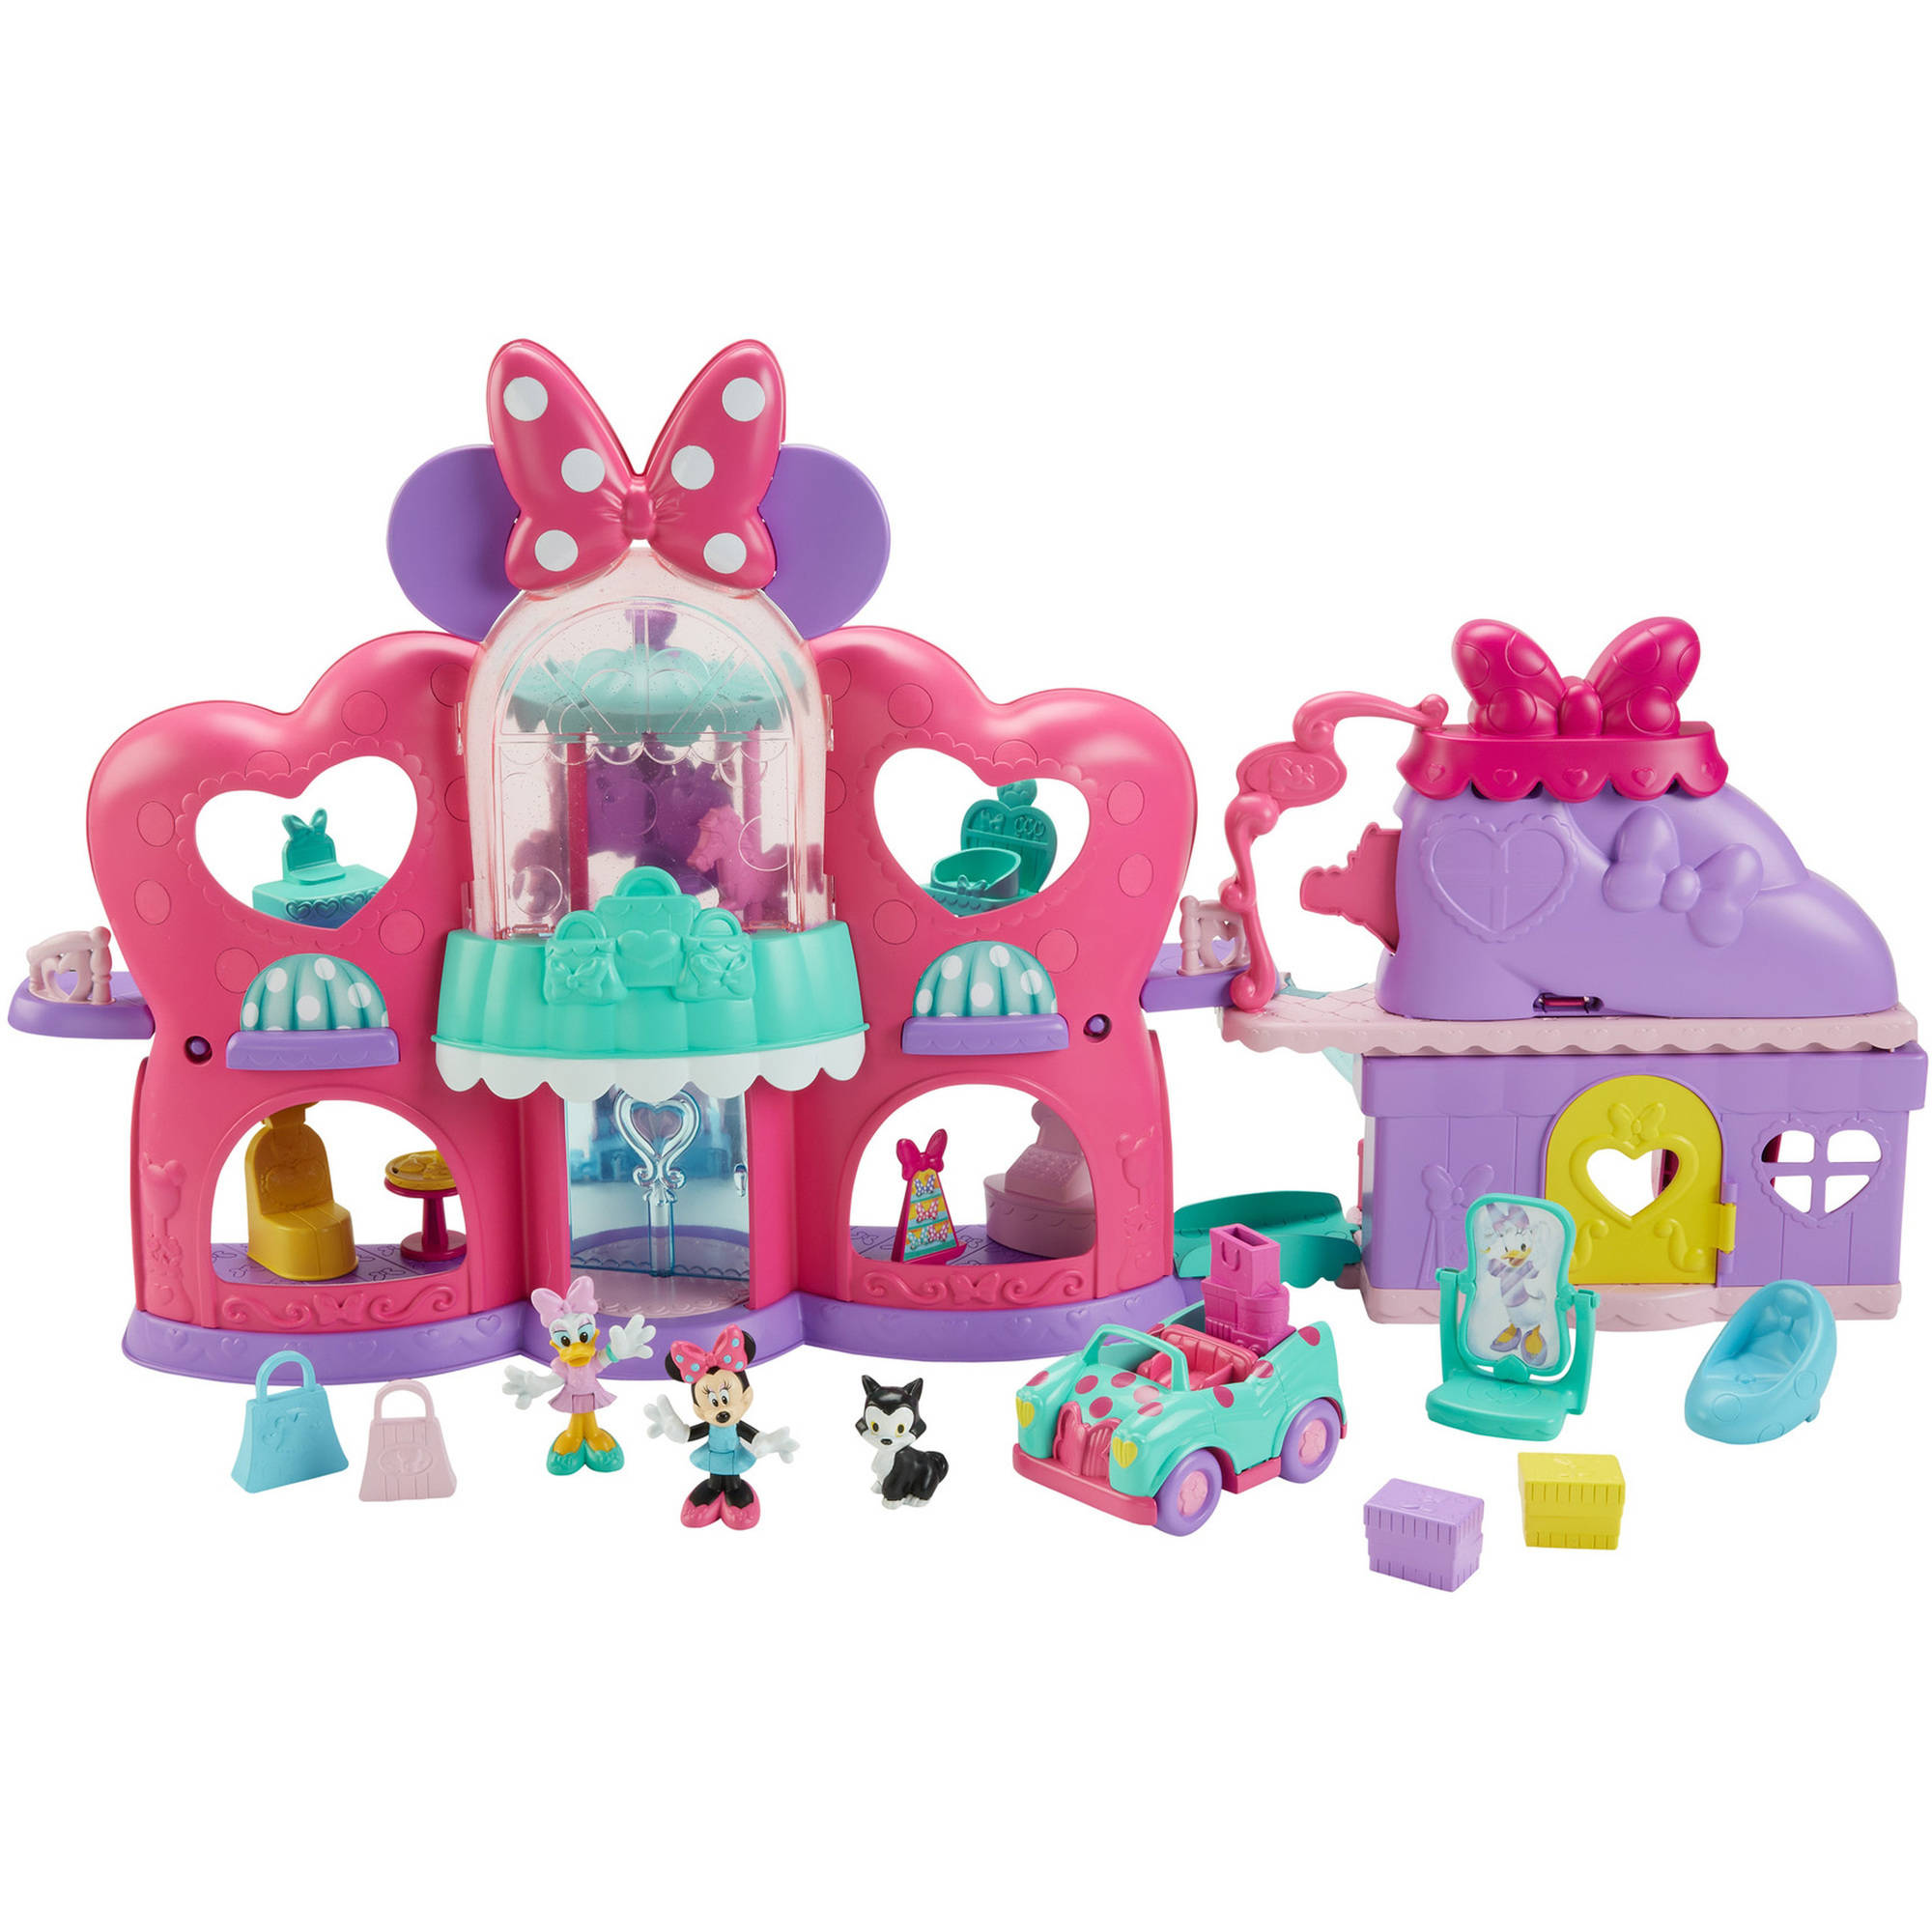 superb New Minnie Mouse Toys Part - 3: Fisher-Price Disney Minnie Mouse Fabulous Shopping Mall | eBay